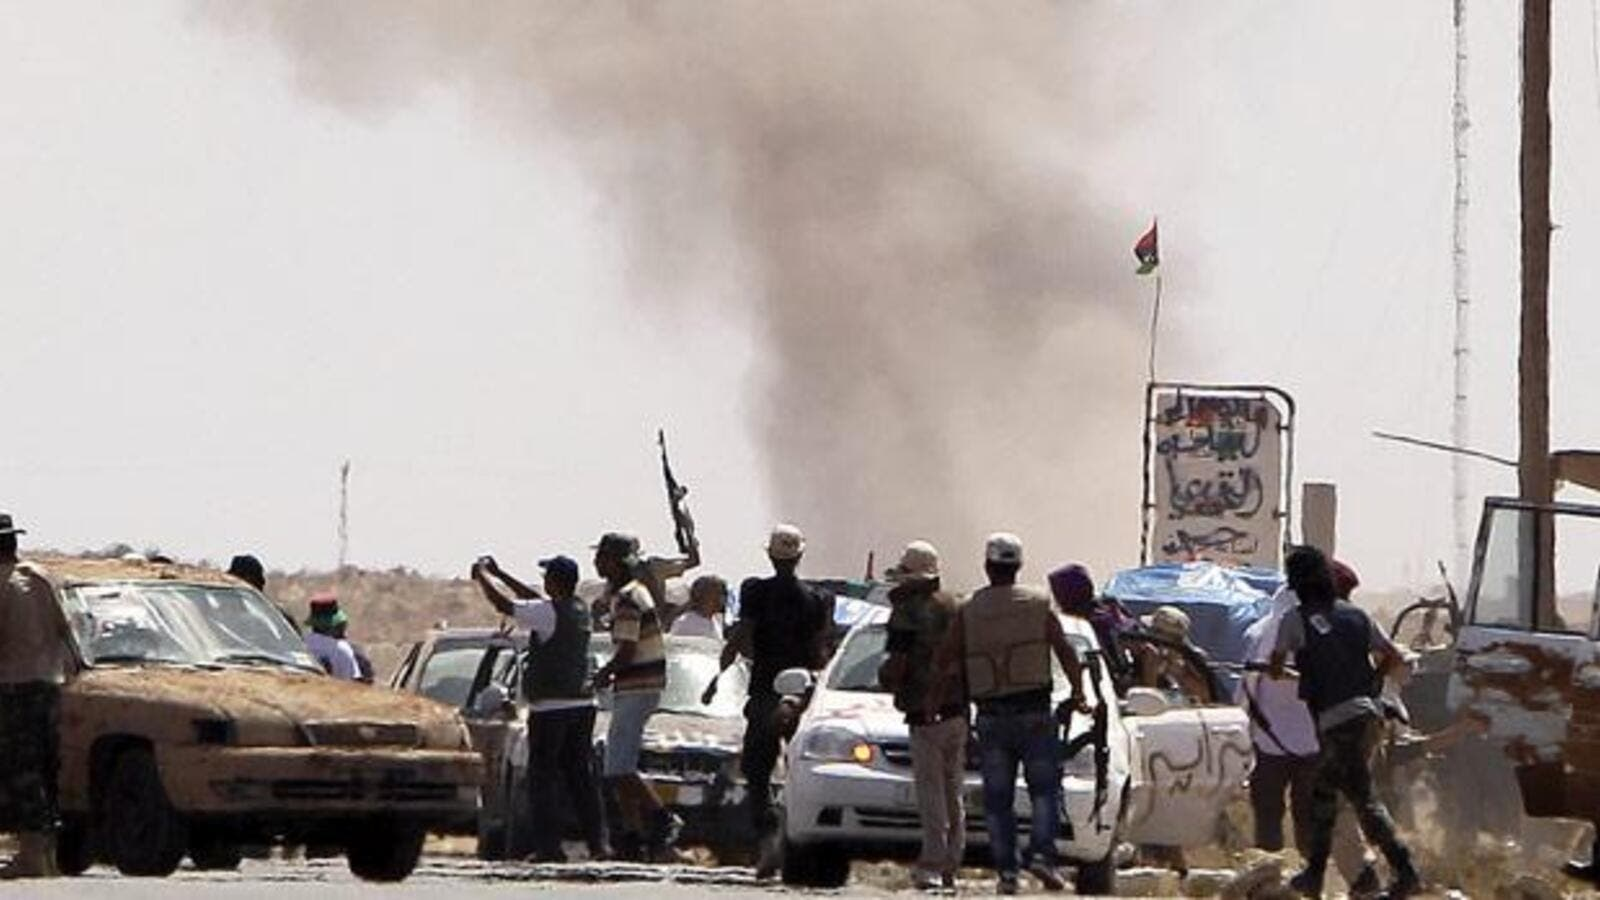 Libyan National Transitional Council fighters come under Grad missiles attack from Gaddafi loyalists at an outpost on the outskirts of the city of Bani Walid. (Joseph Eid/ AFP)